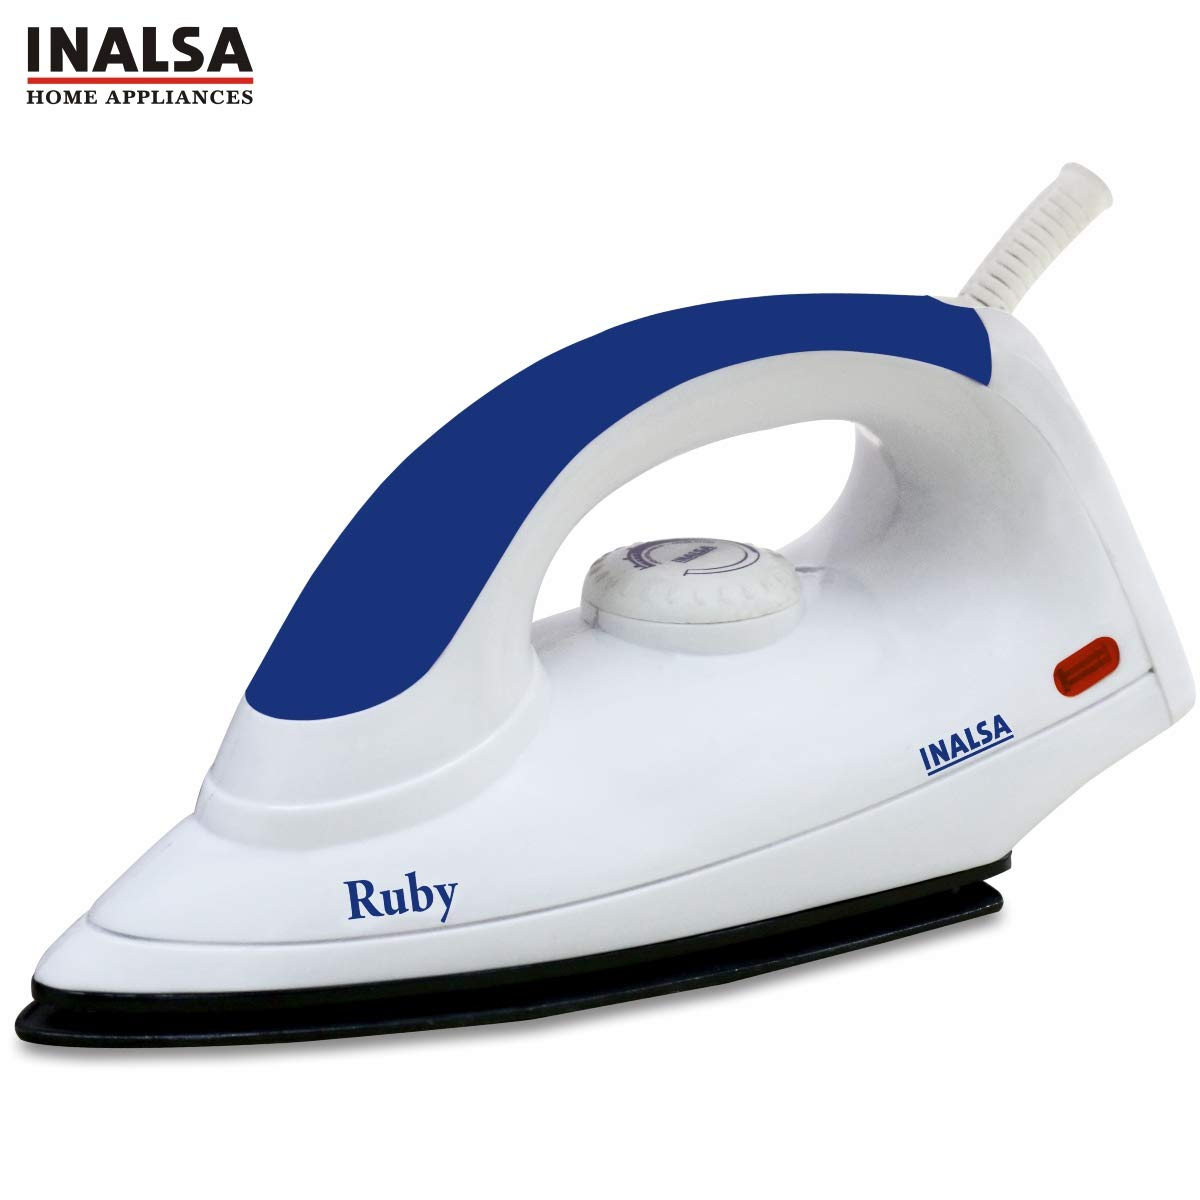 Inalsa Ruby 1000-Watt Dry Iron With Non-Stick Coated